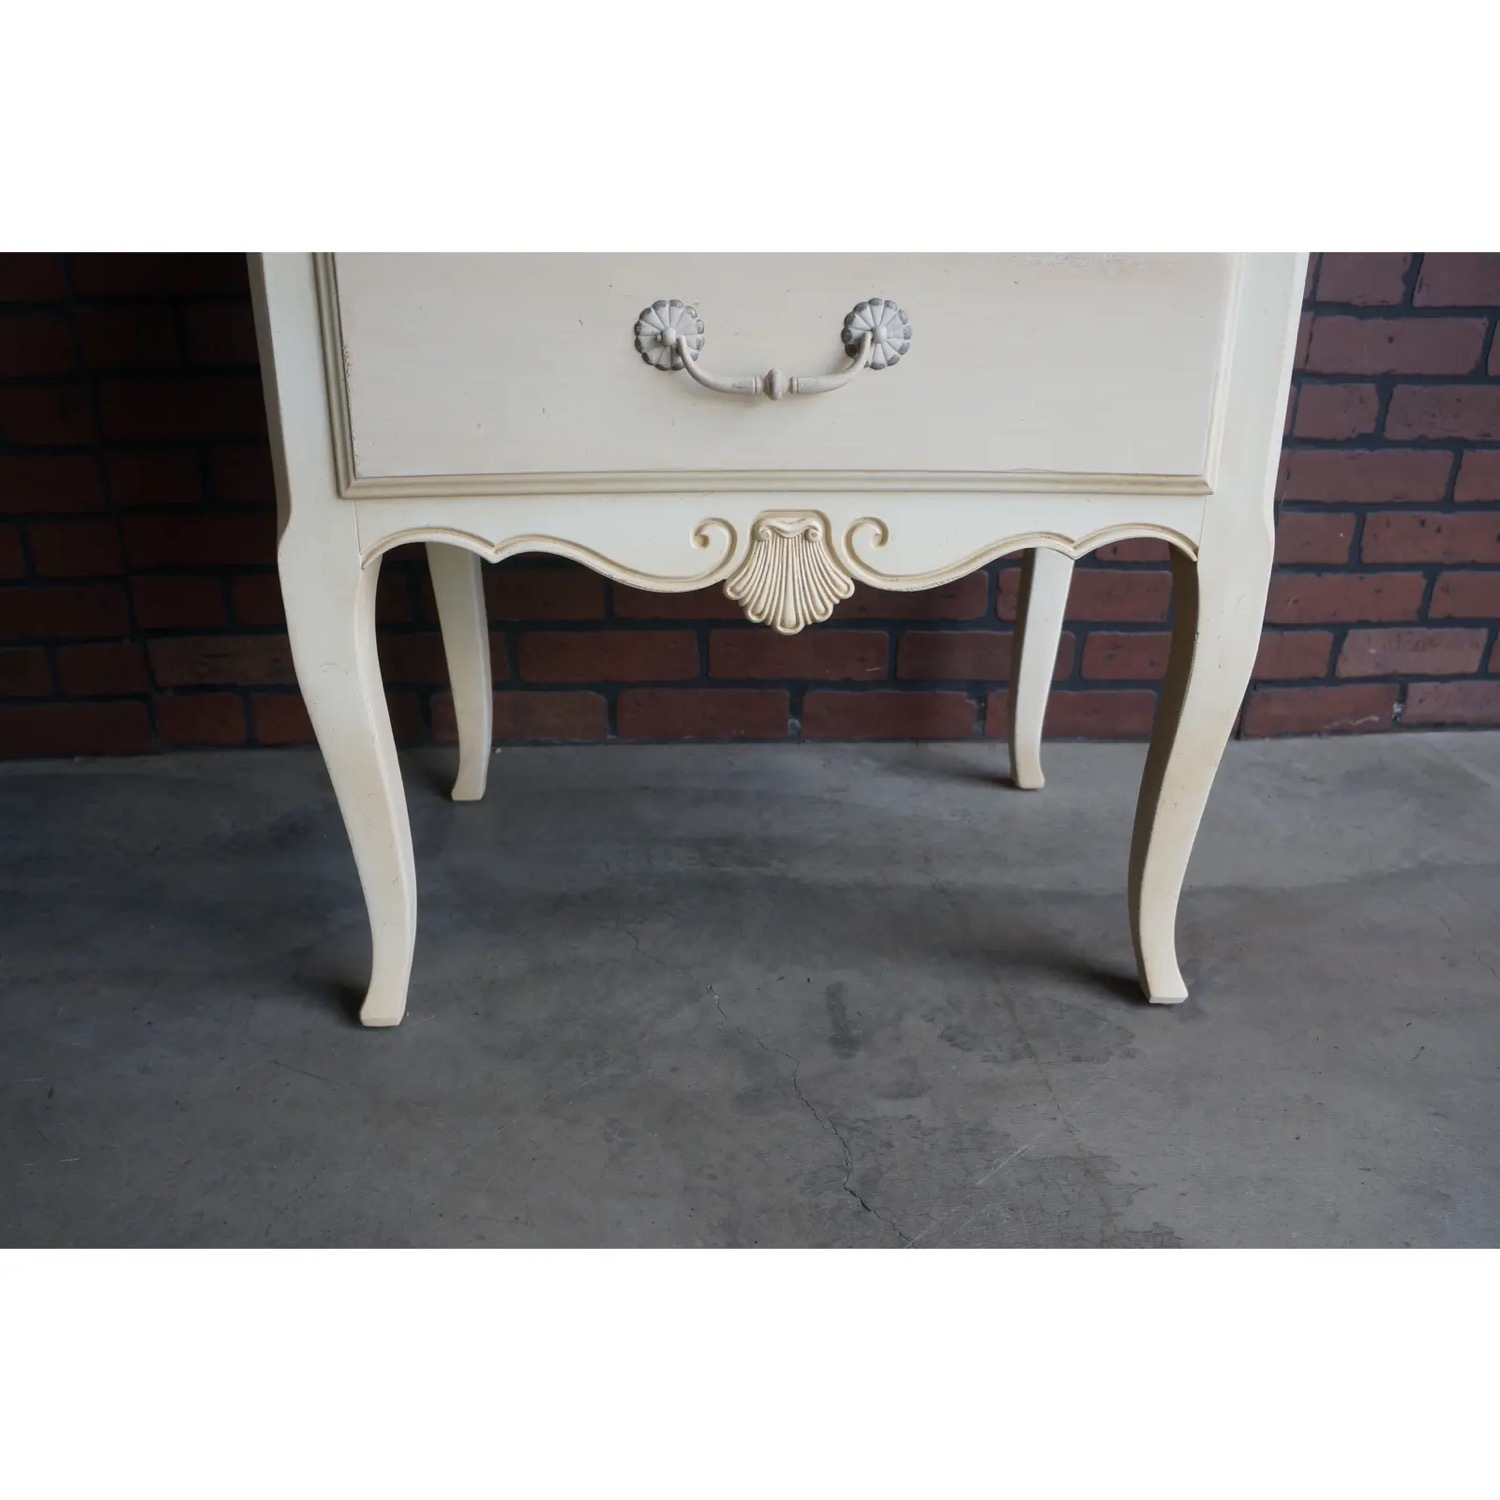 Ethan Allen Country French Nightstands - image-4